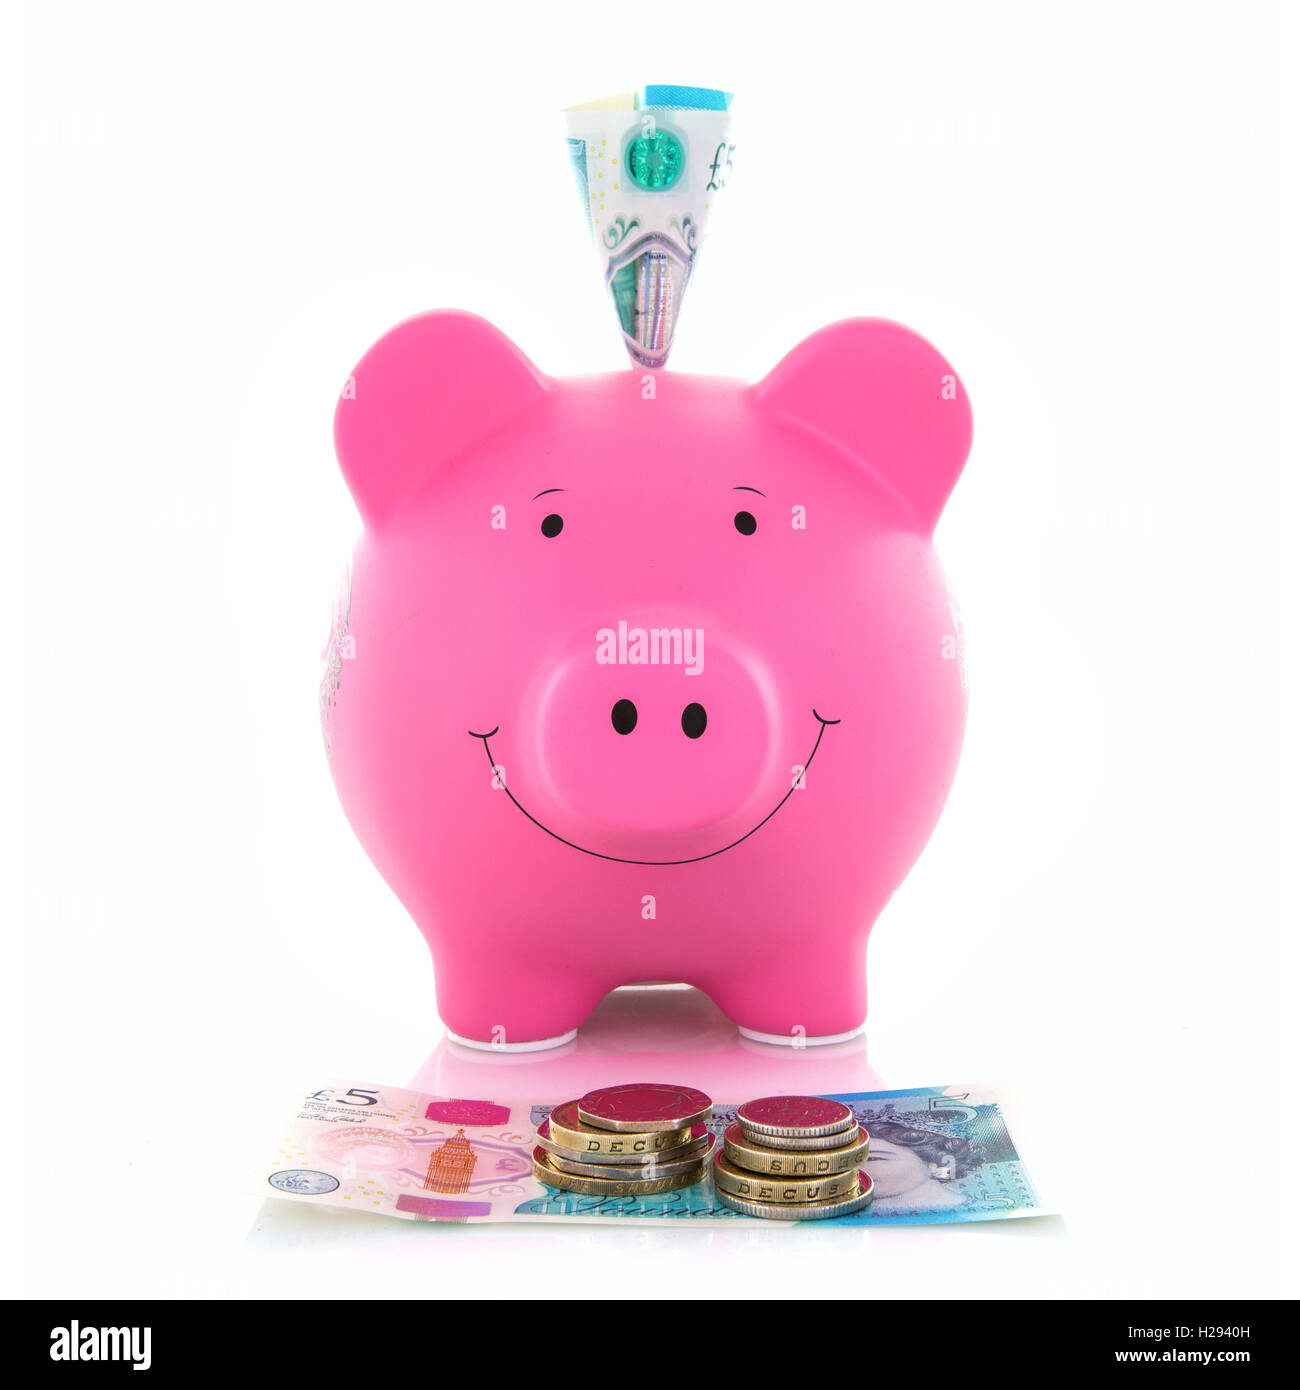 Pink Piggy Bank with new polymer five pound notes on a white Background - Stock Image